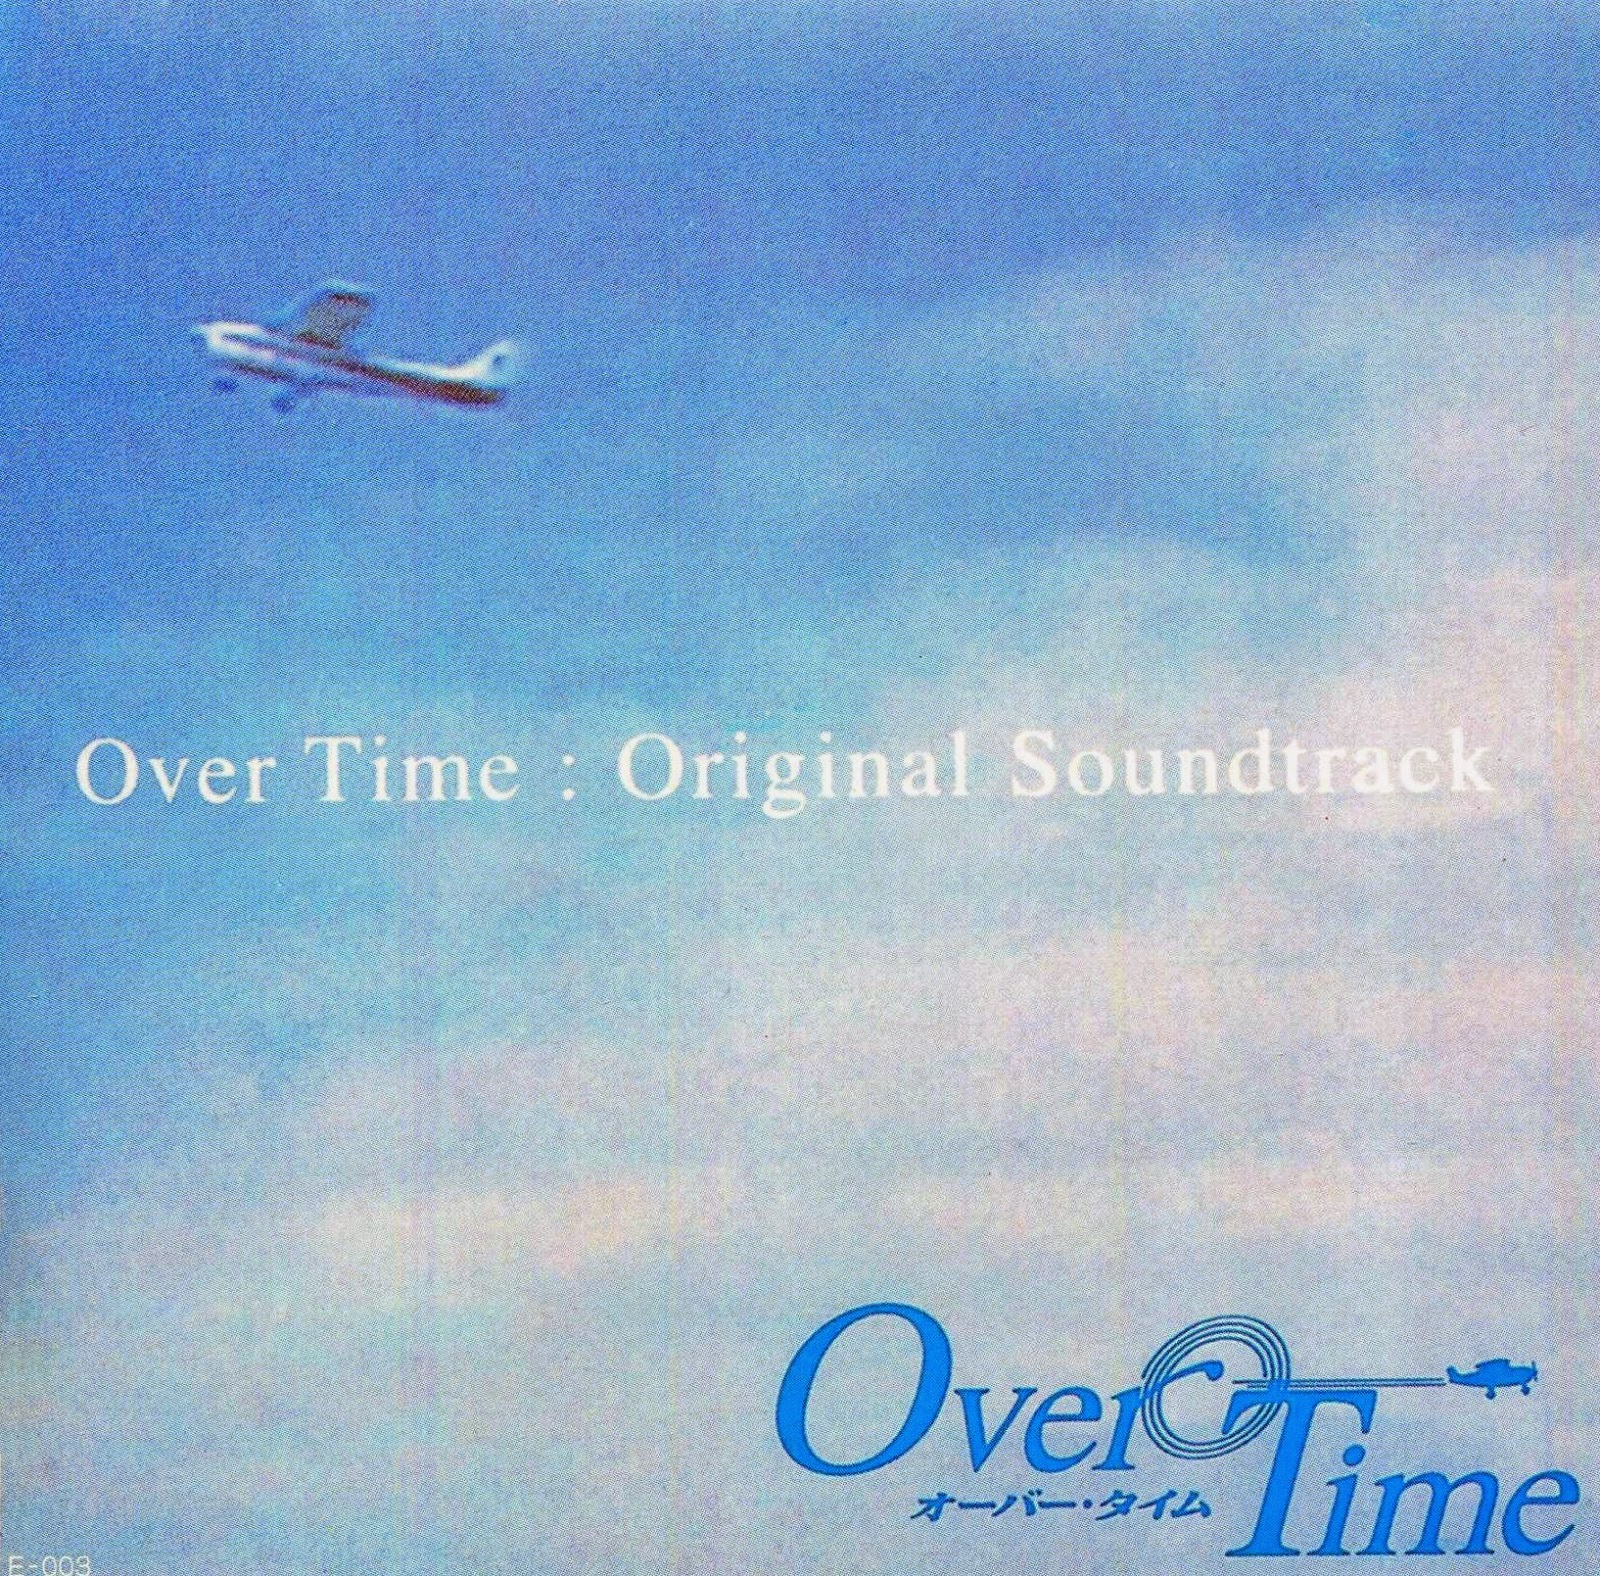 Cover Album of OST - OVER TIME オーバー・タイム